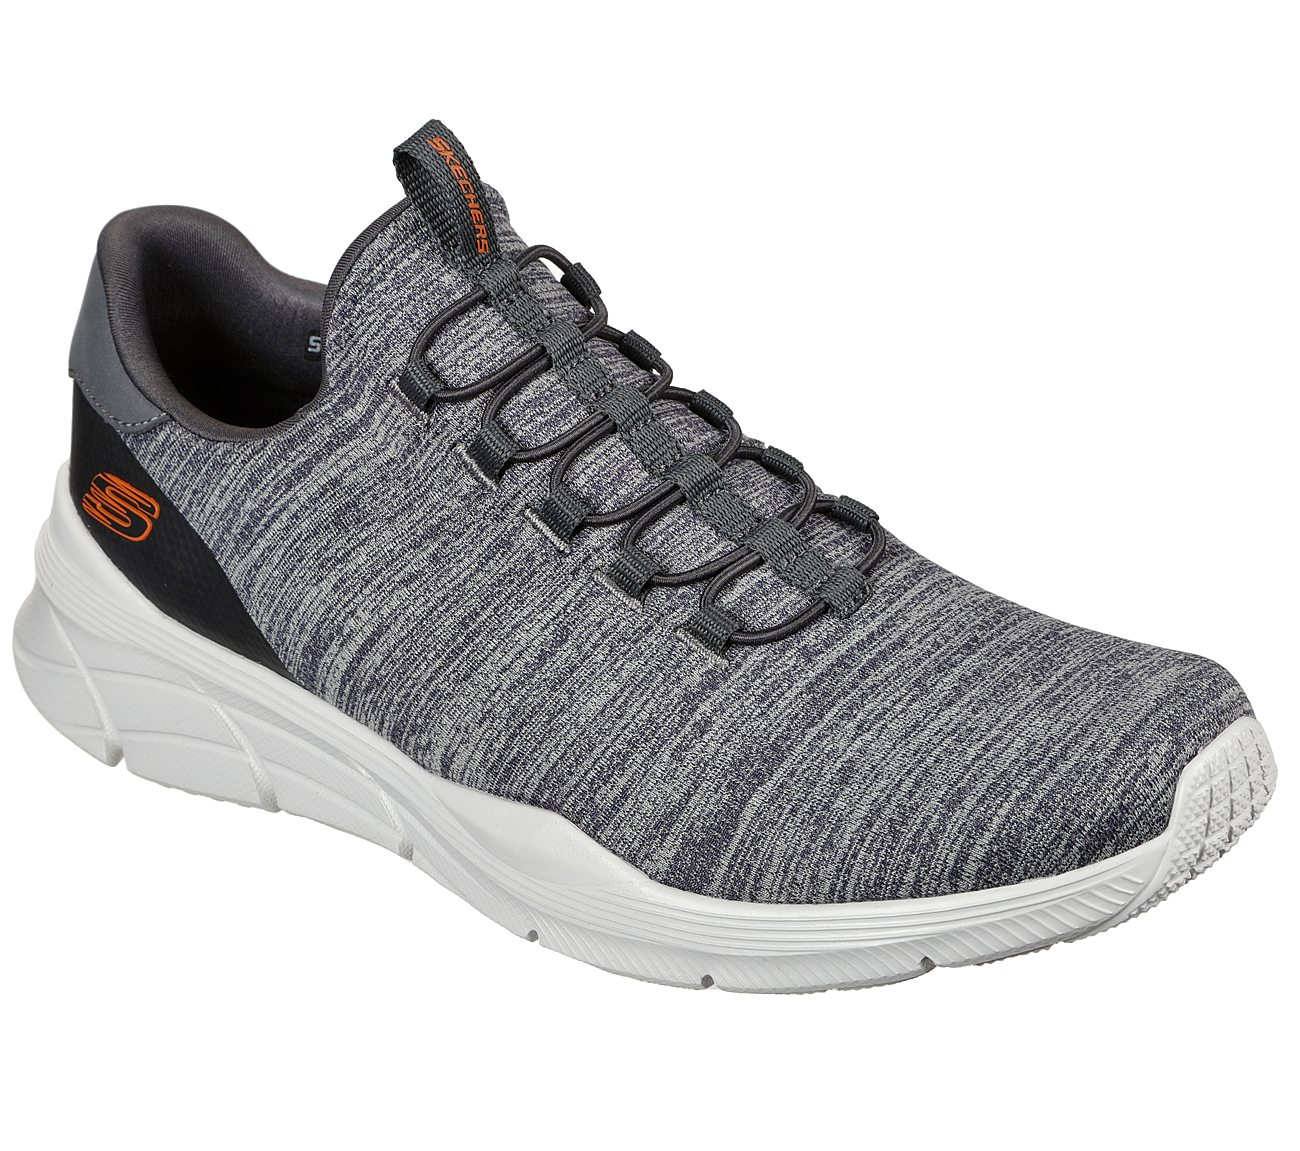 Buy SKECHERS Relaxed Fit: Equalizer 4.0